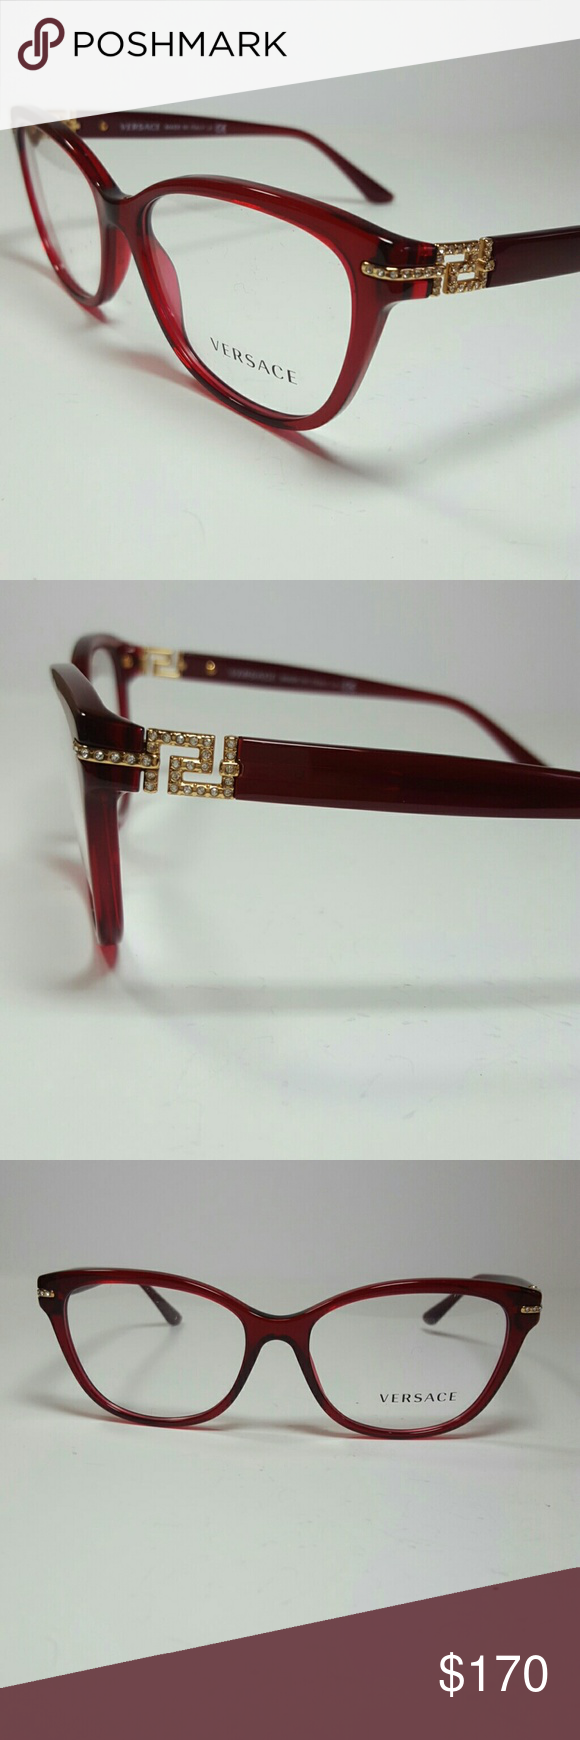 dc253f381f Versace Eyeglasses New and authentic Versace Eyeglasses Dark red frame Size  54-16-140 Original case included Versace Accessories Glasses